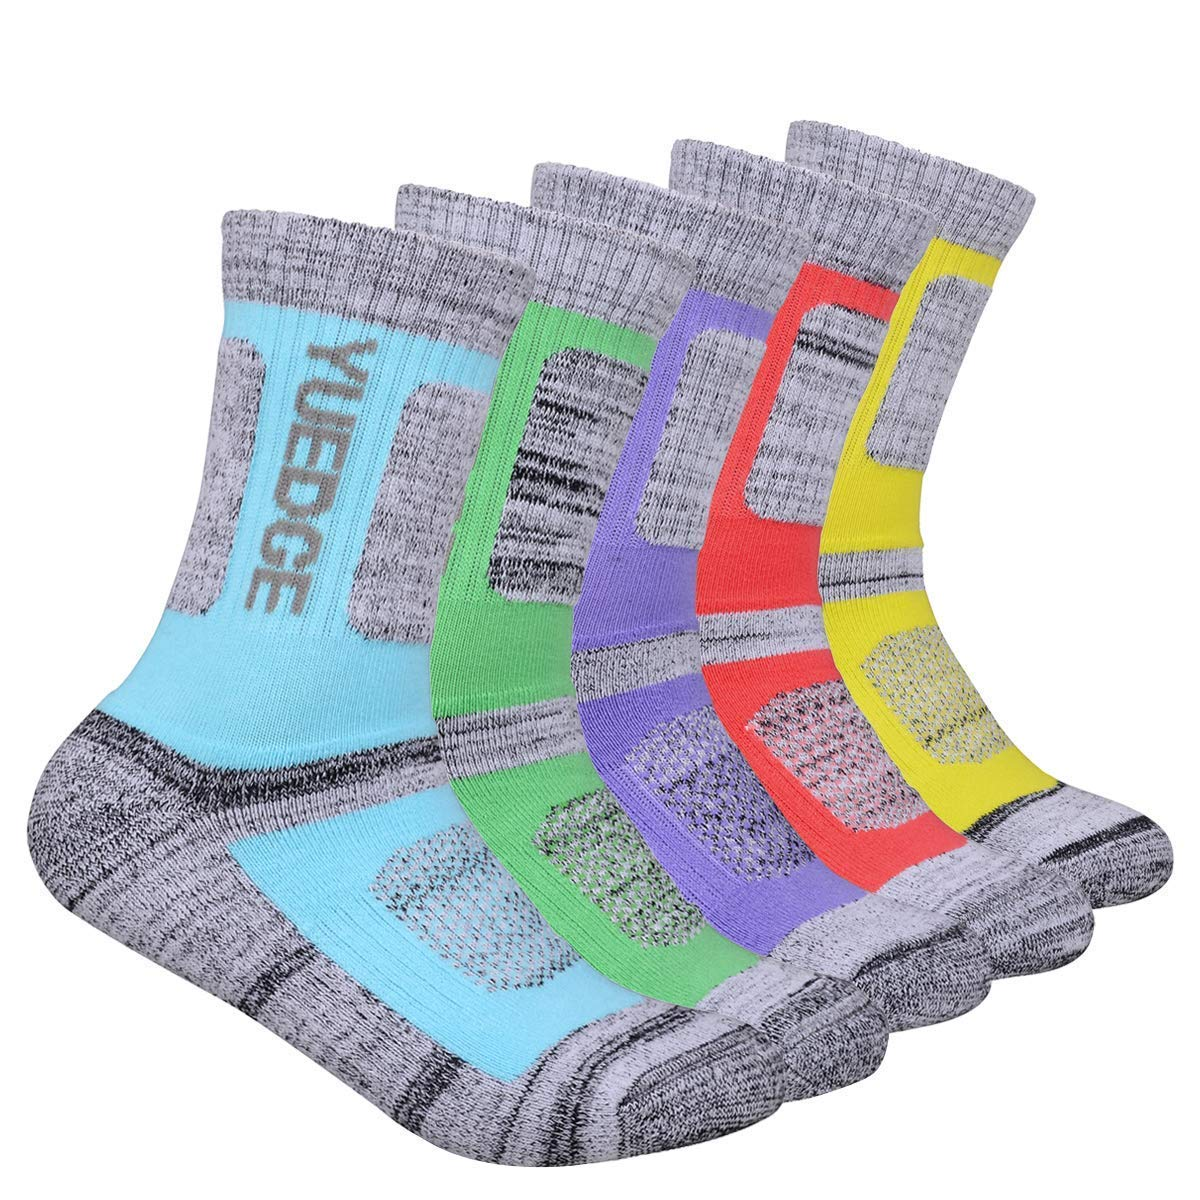 YUEDGE 5 Pairs Women's Wicking Cushion Crew Multi Performance Outdoor Hiking Socks by LECIEL